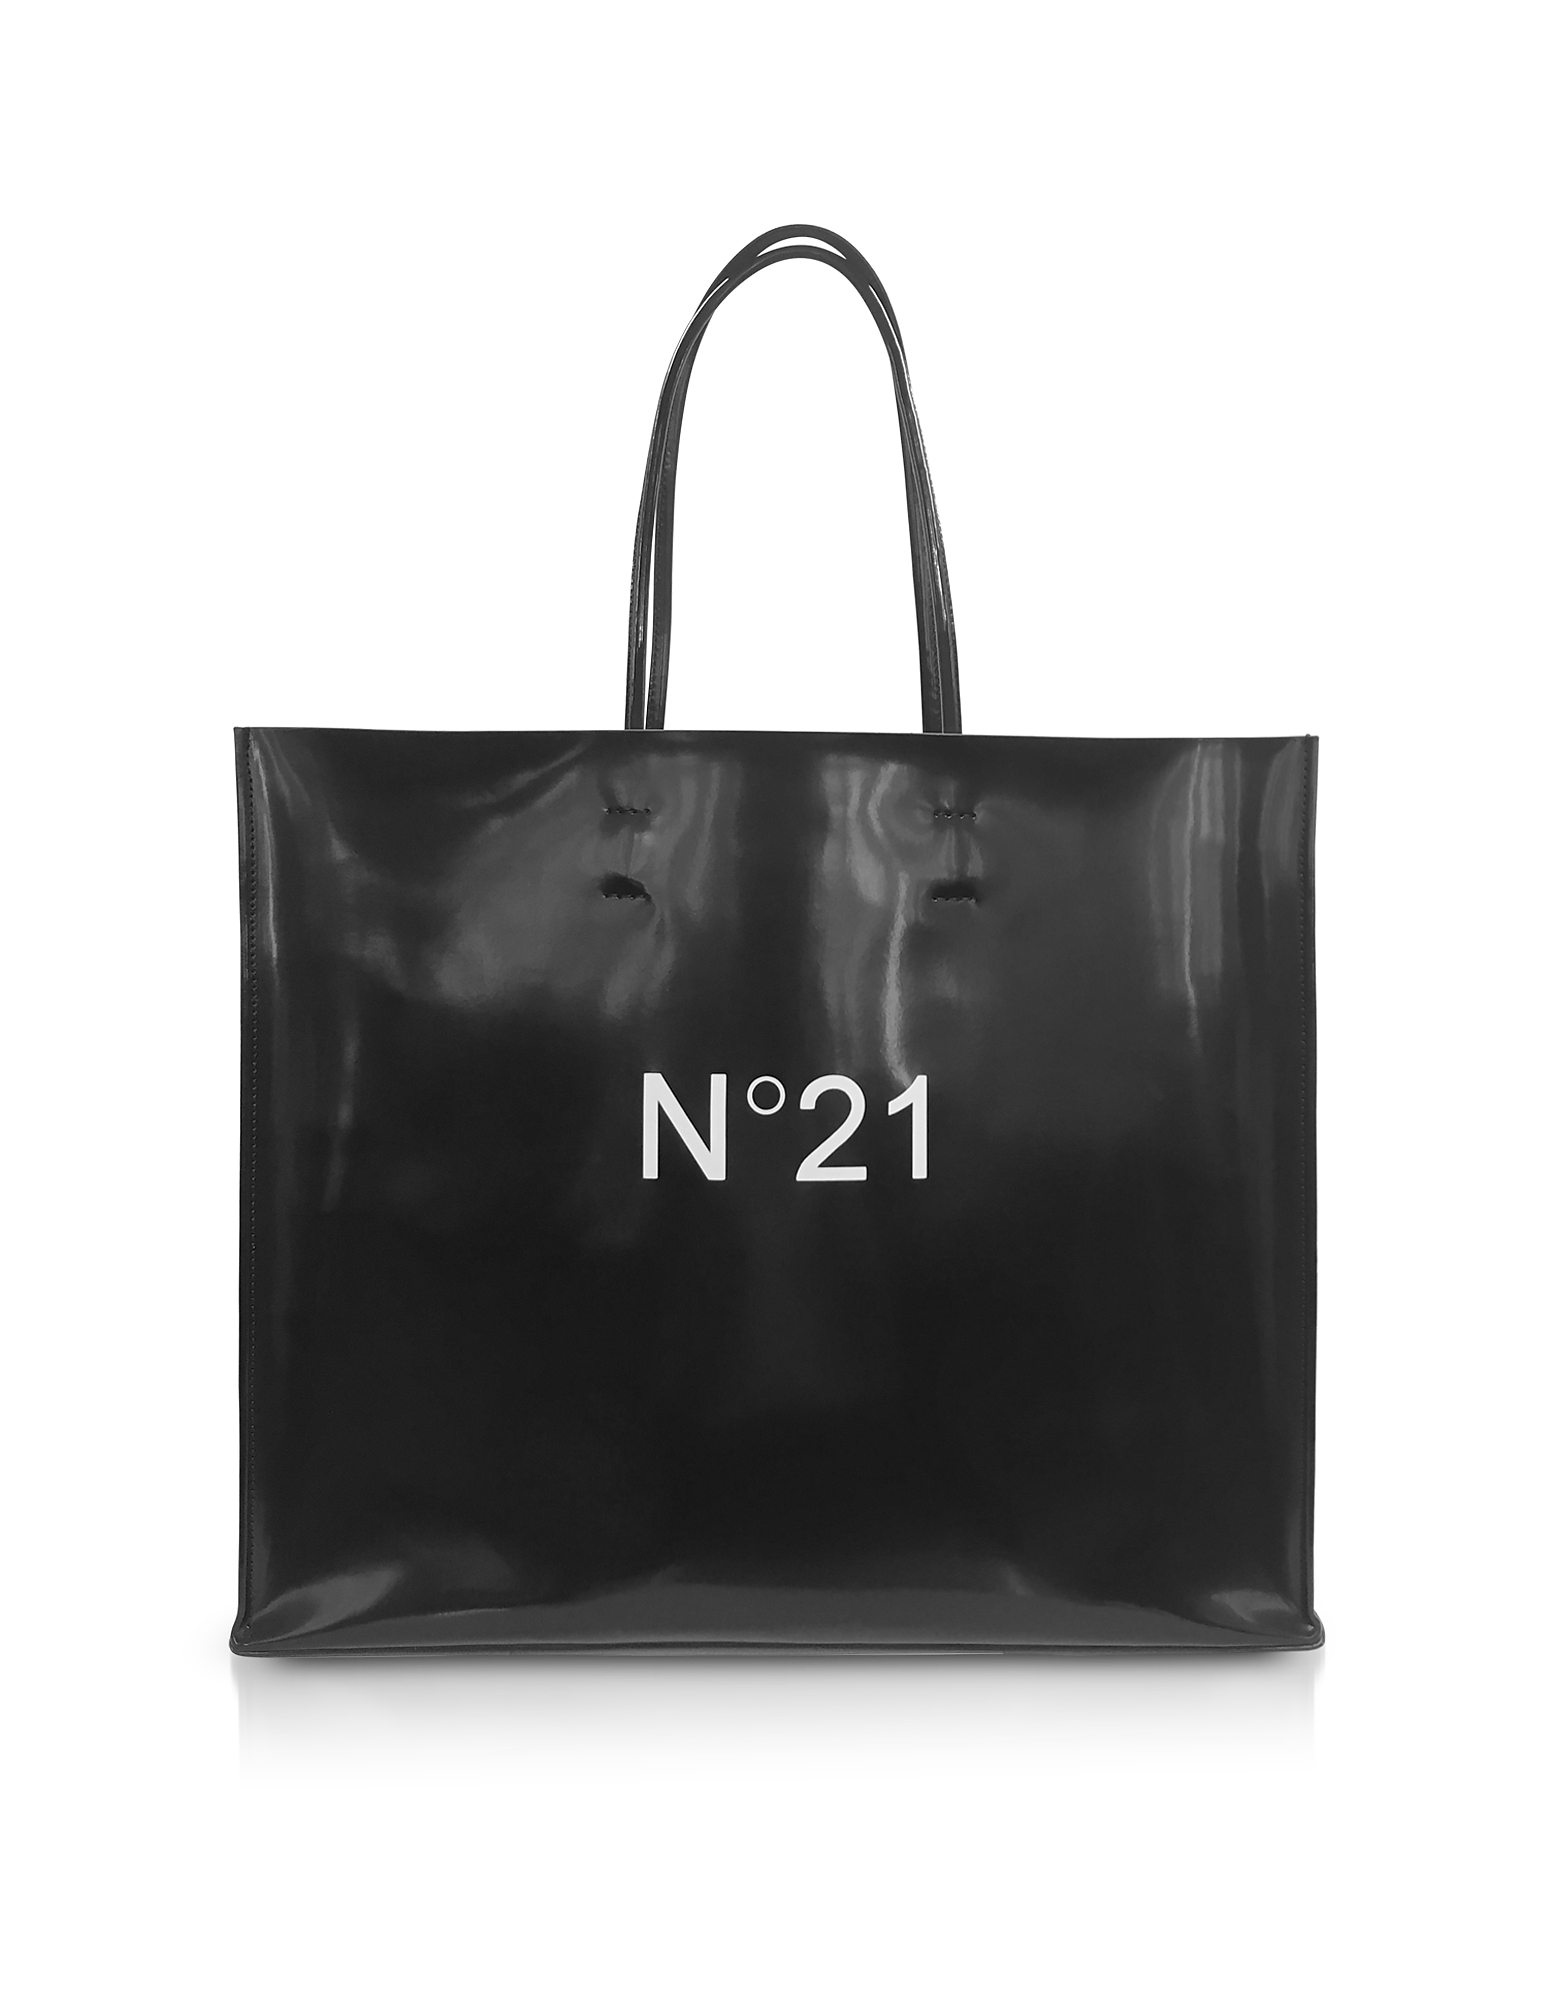 N°21 Handbags, Black Patent Eco-Leather Large Tote Bag